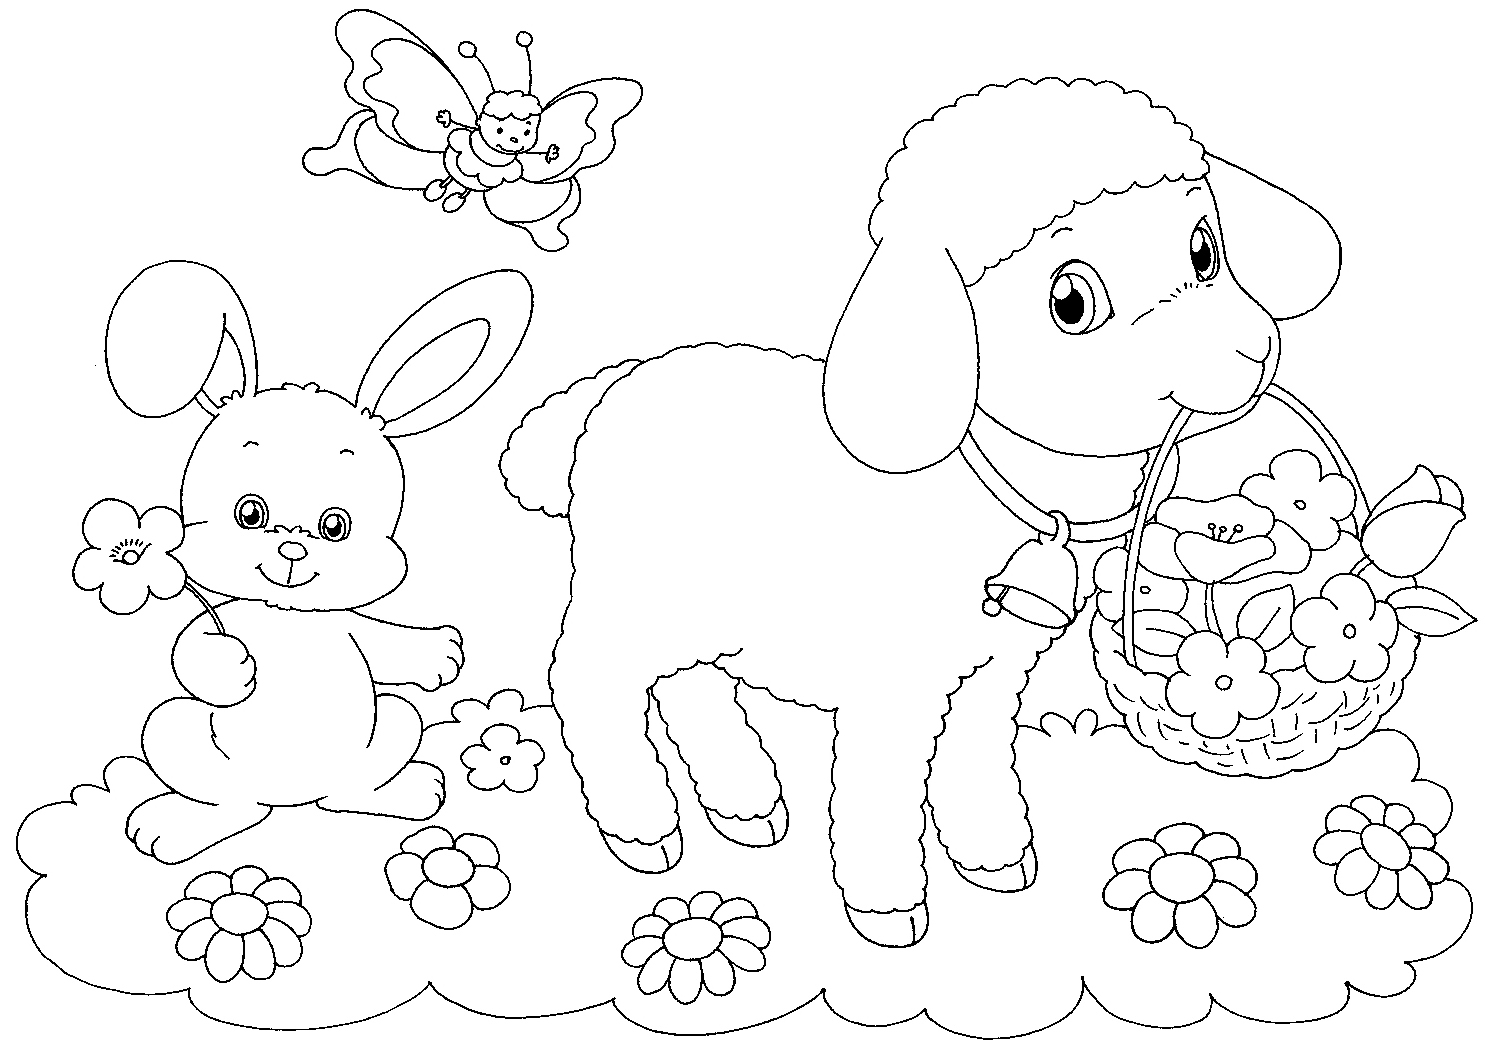 1485x1050 Lamb Coloring Page With Wallpaper Hd Background Mayapurjacouture